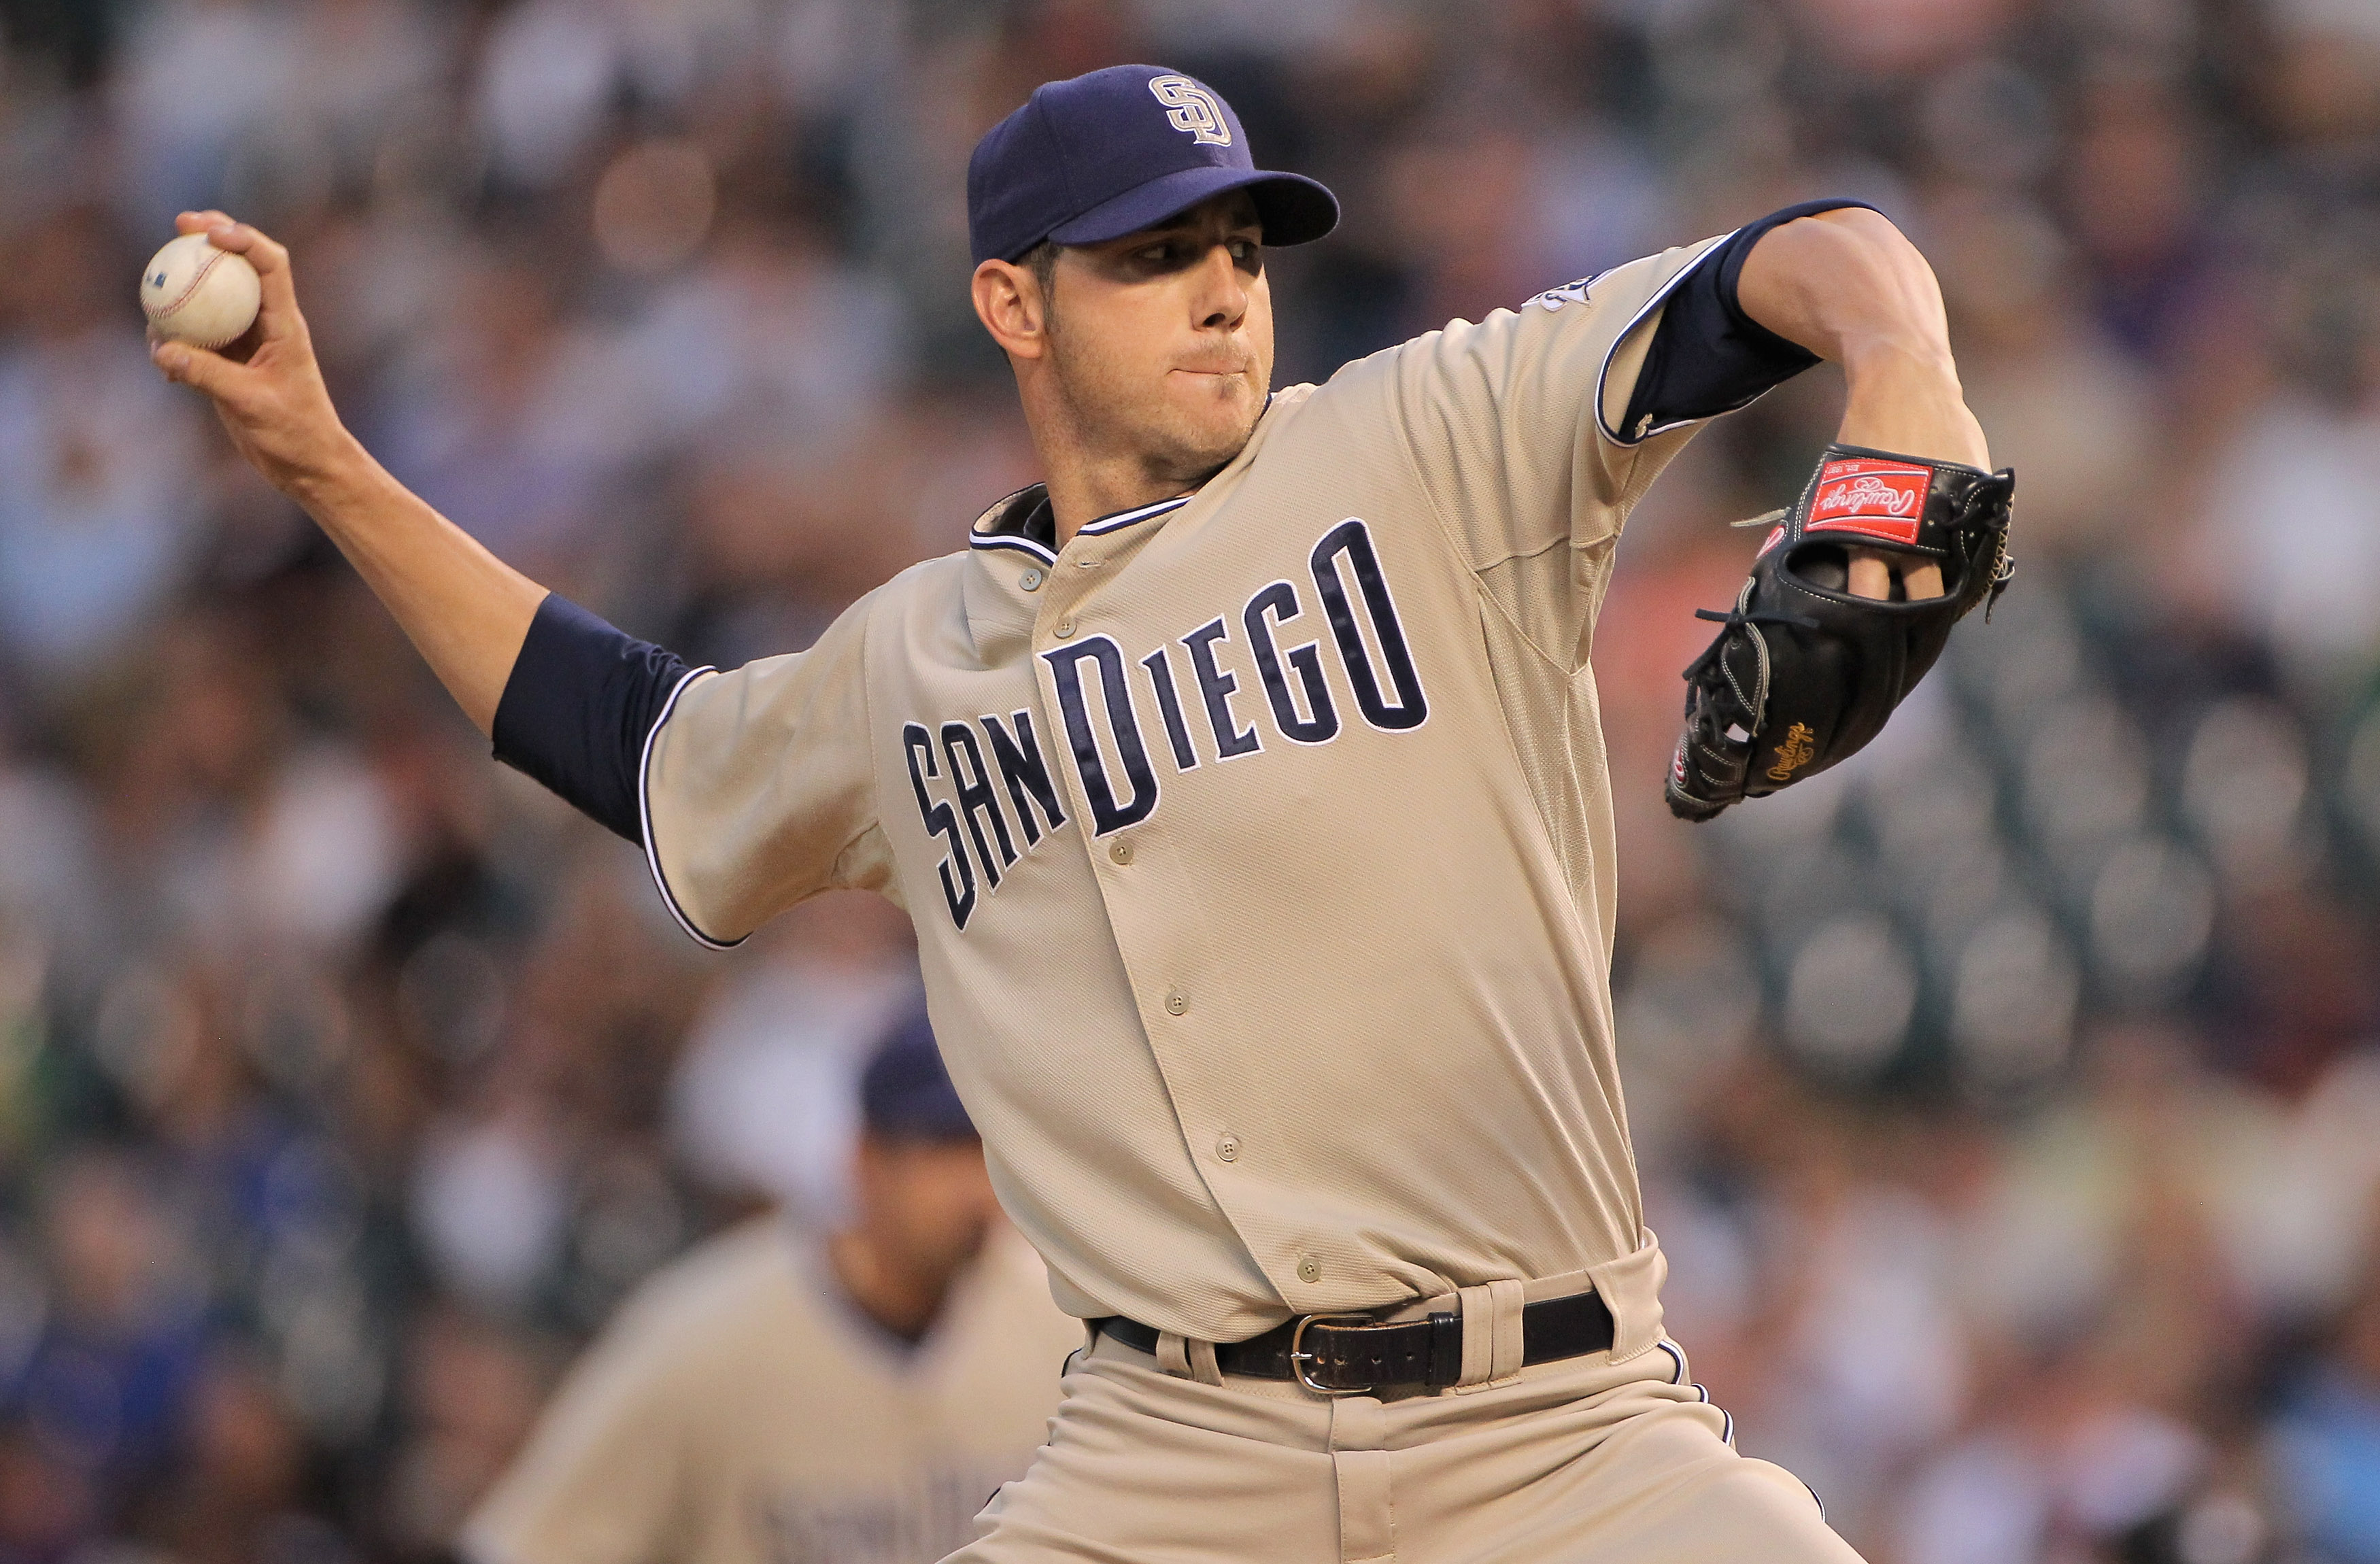 DENVER - SEPTEMBER 14:  Starting pitcher Jon Garland #27 of the San Diego Padres delivers against the Colorado Rockies at Coors Field on September 14, 2010 in Denver, Colorado.  (Photo by Doug Pensinger/Getty Images)